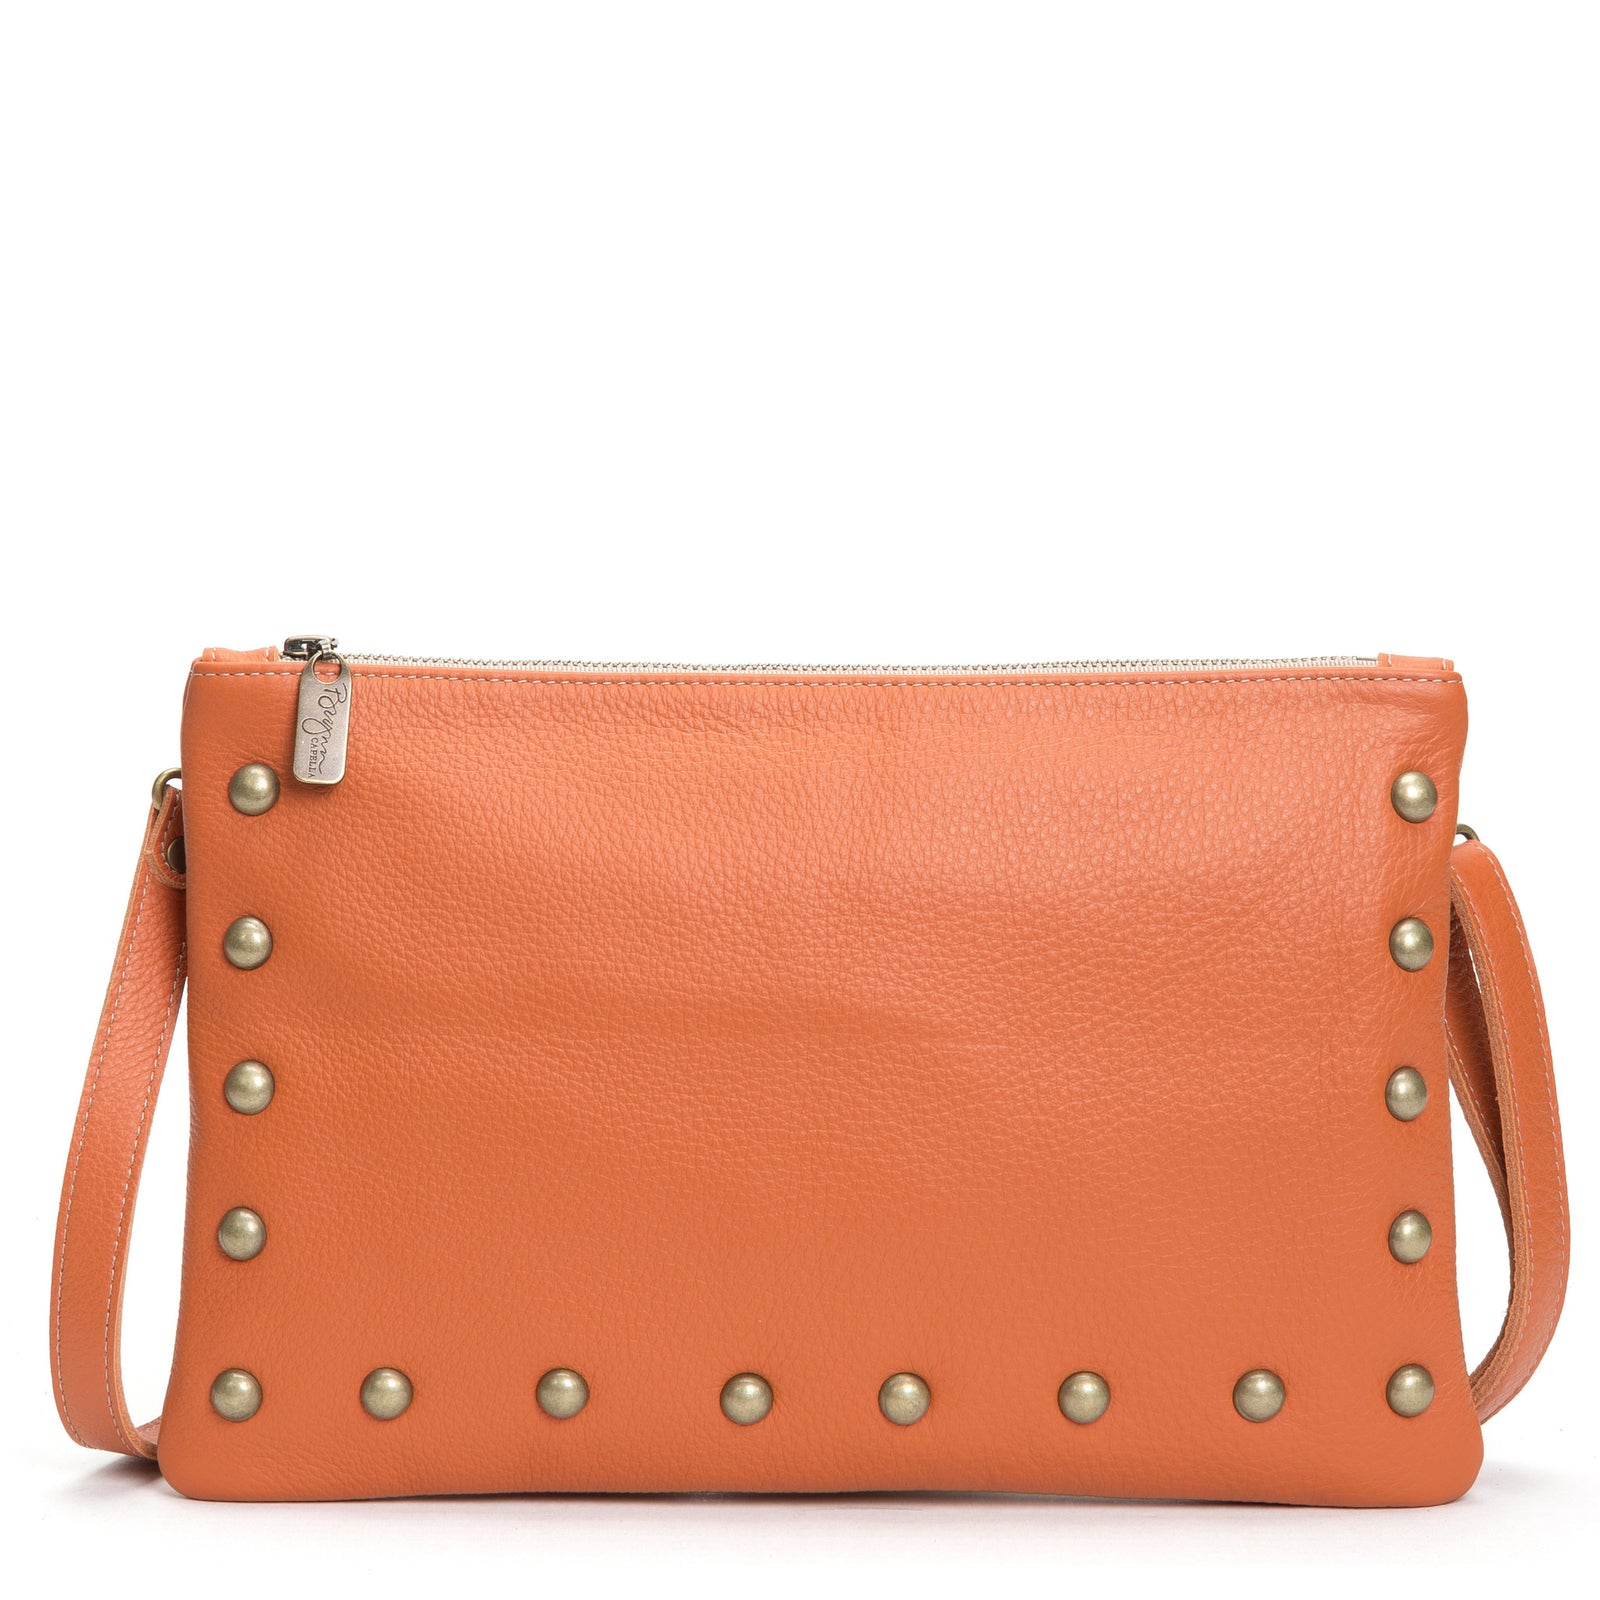 Nikki Clutch/Crossbody - Toucan - Brynn Capella, Small Crossbody